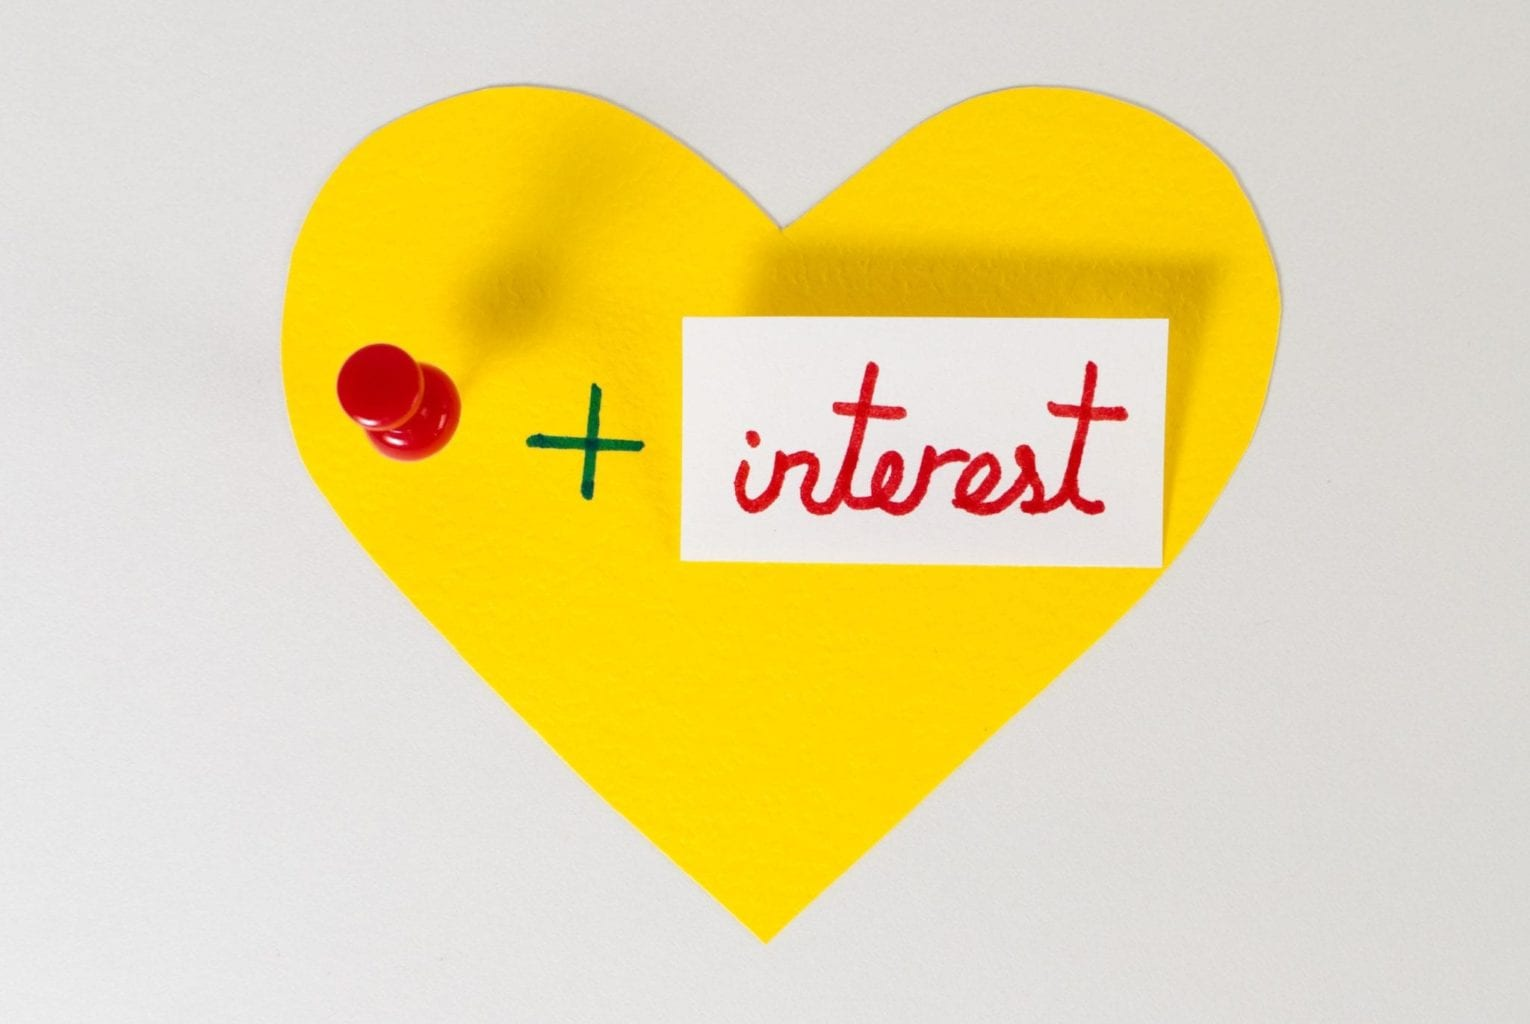 Pinterest Marketing is Getting Serious in 2014